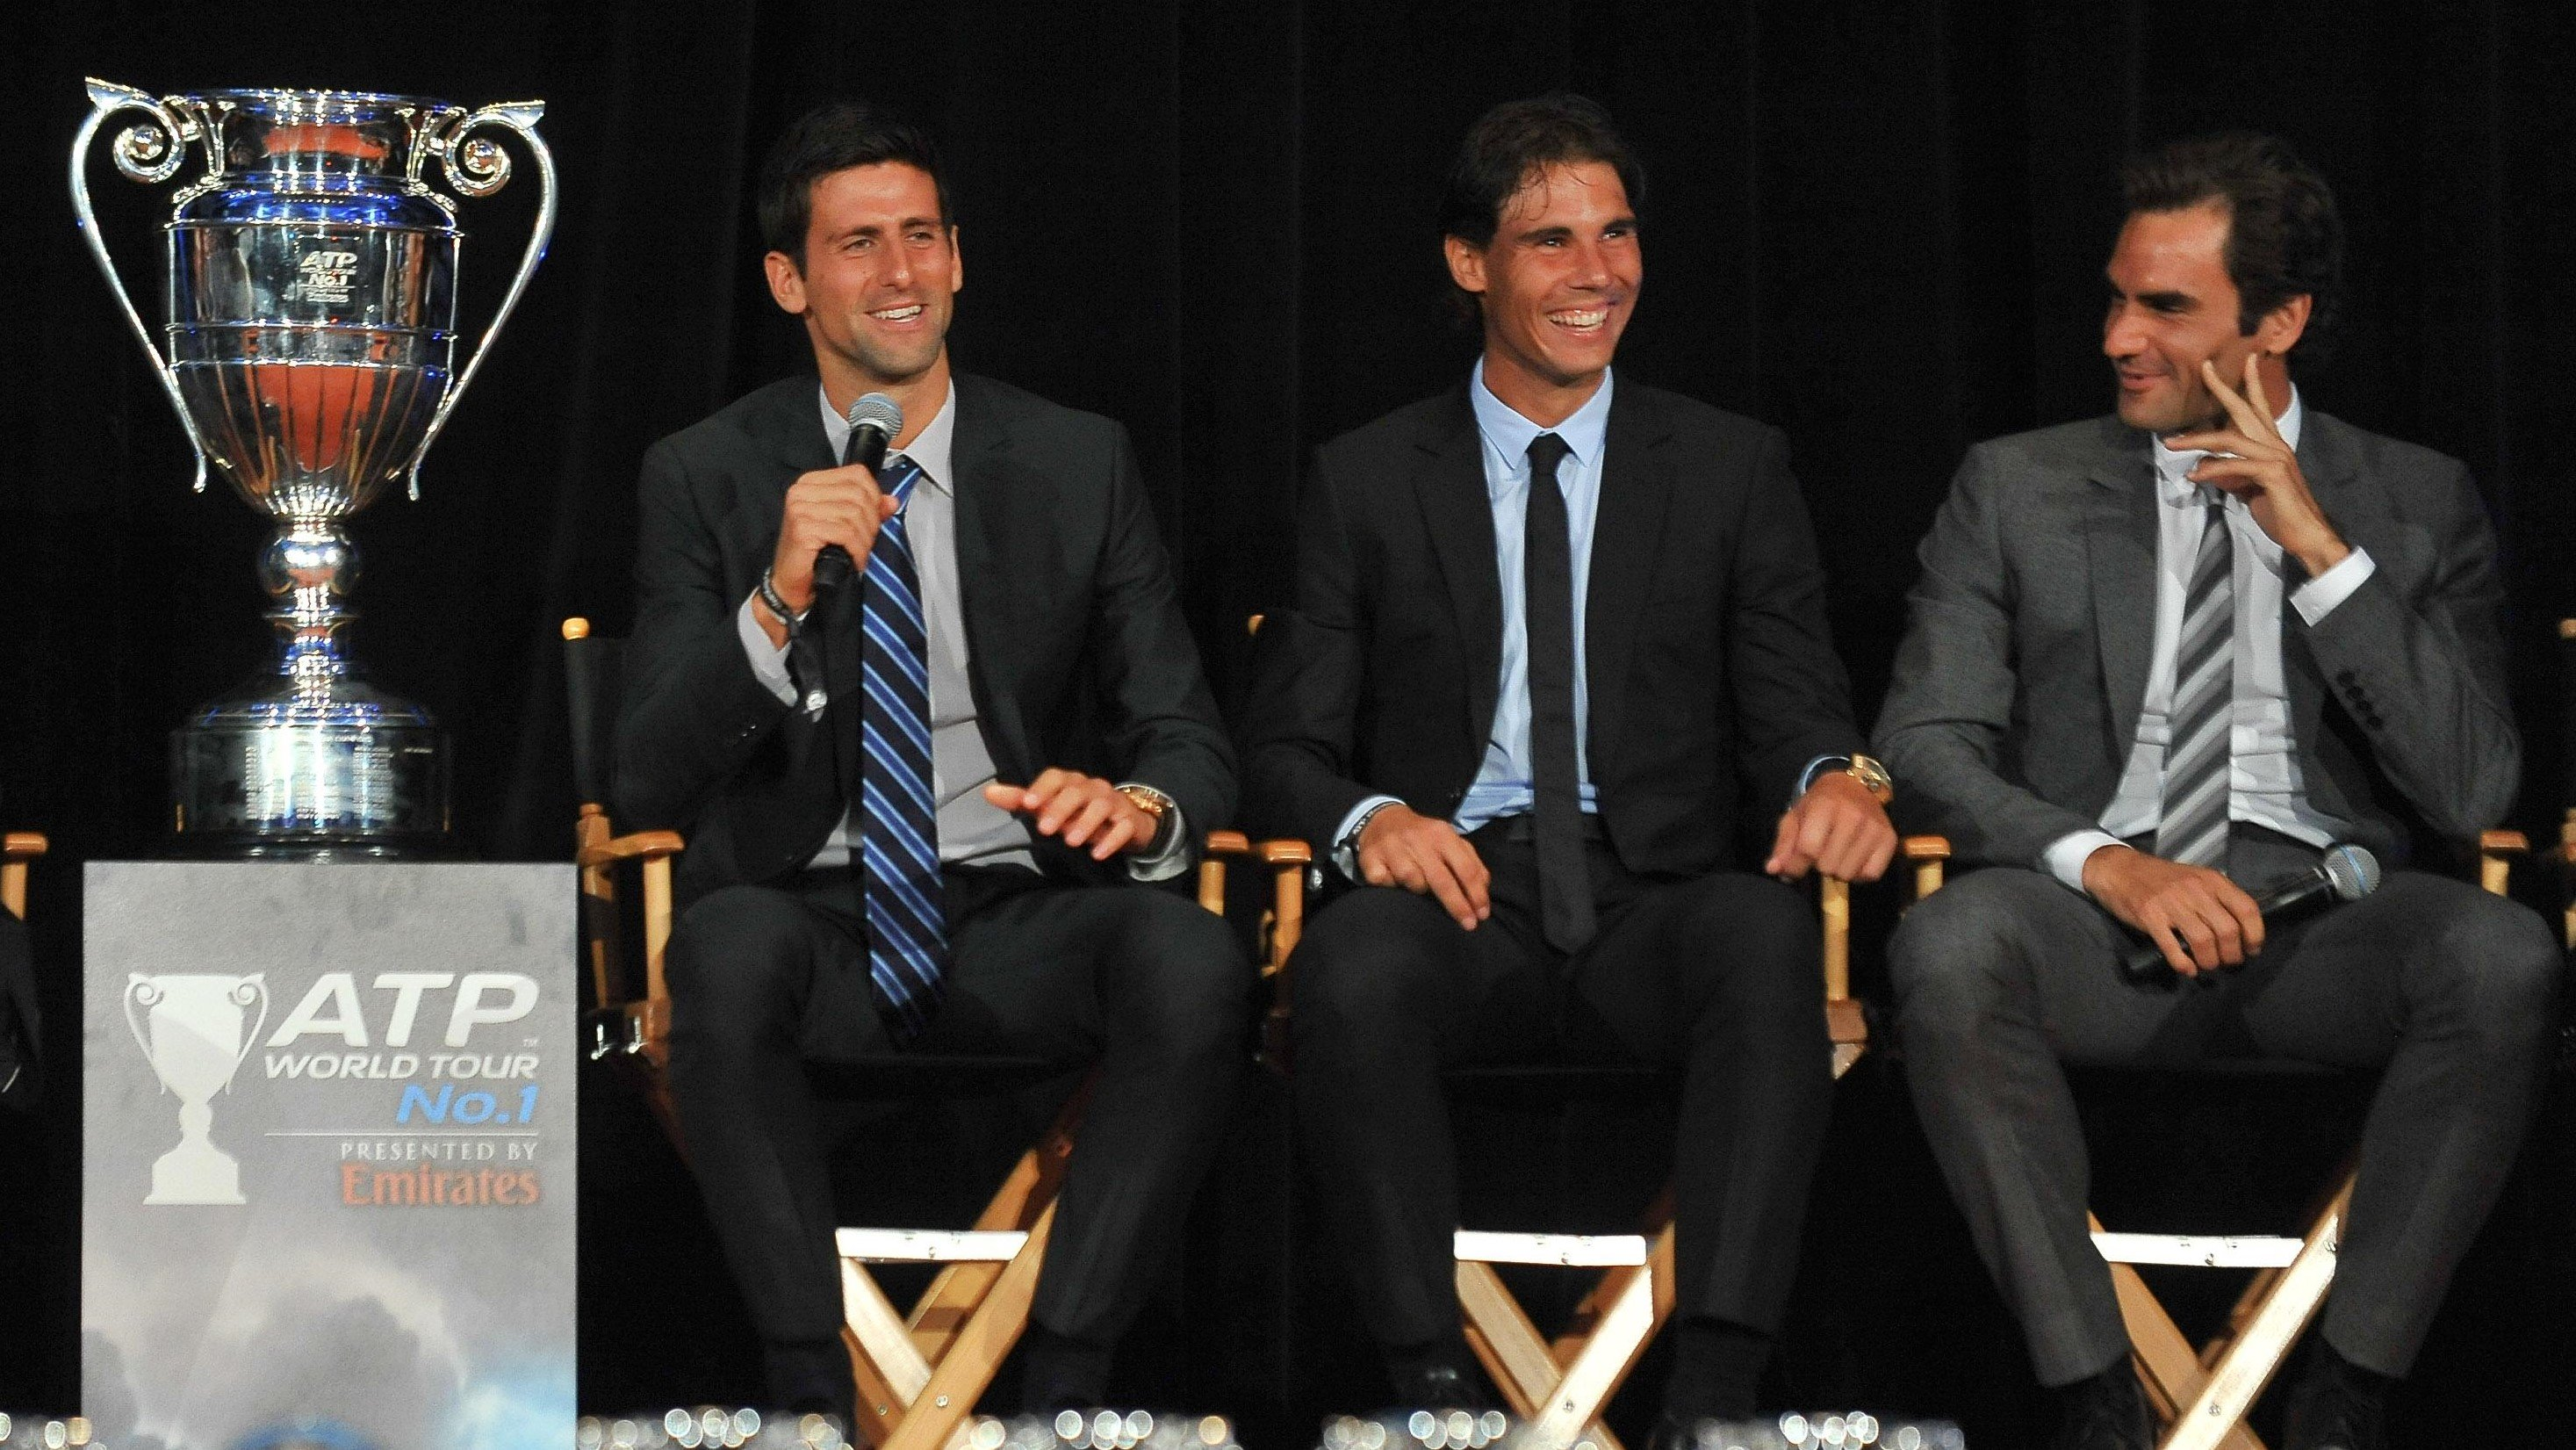 djokovic reveals nadal federer and him have a secret whatsapp group